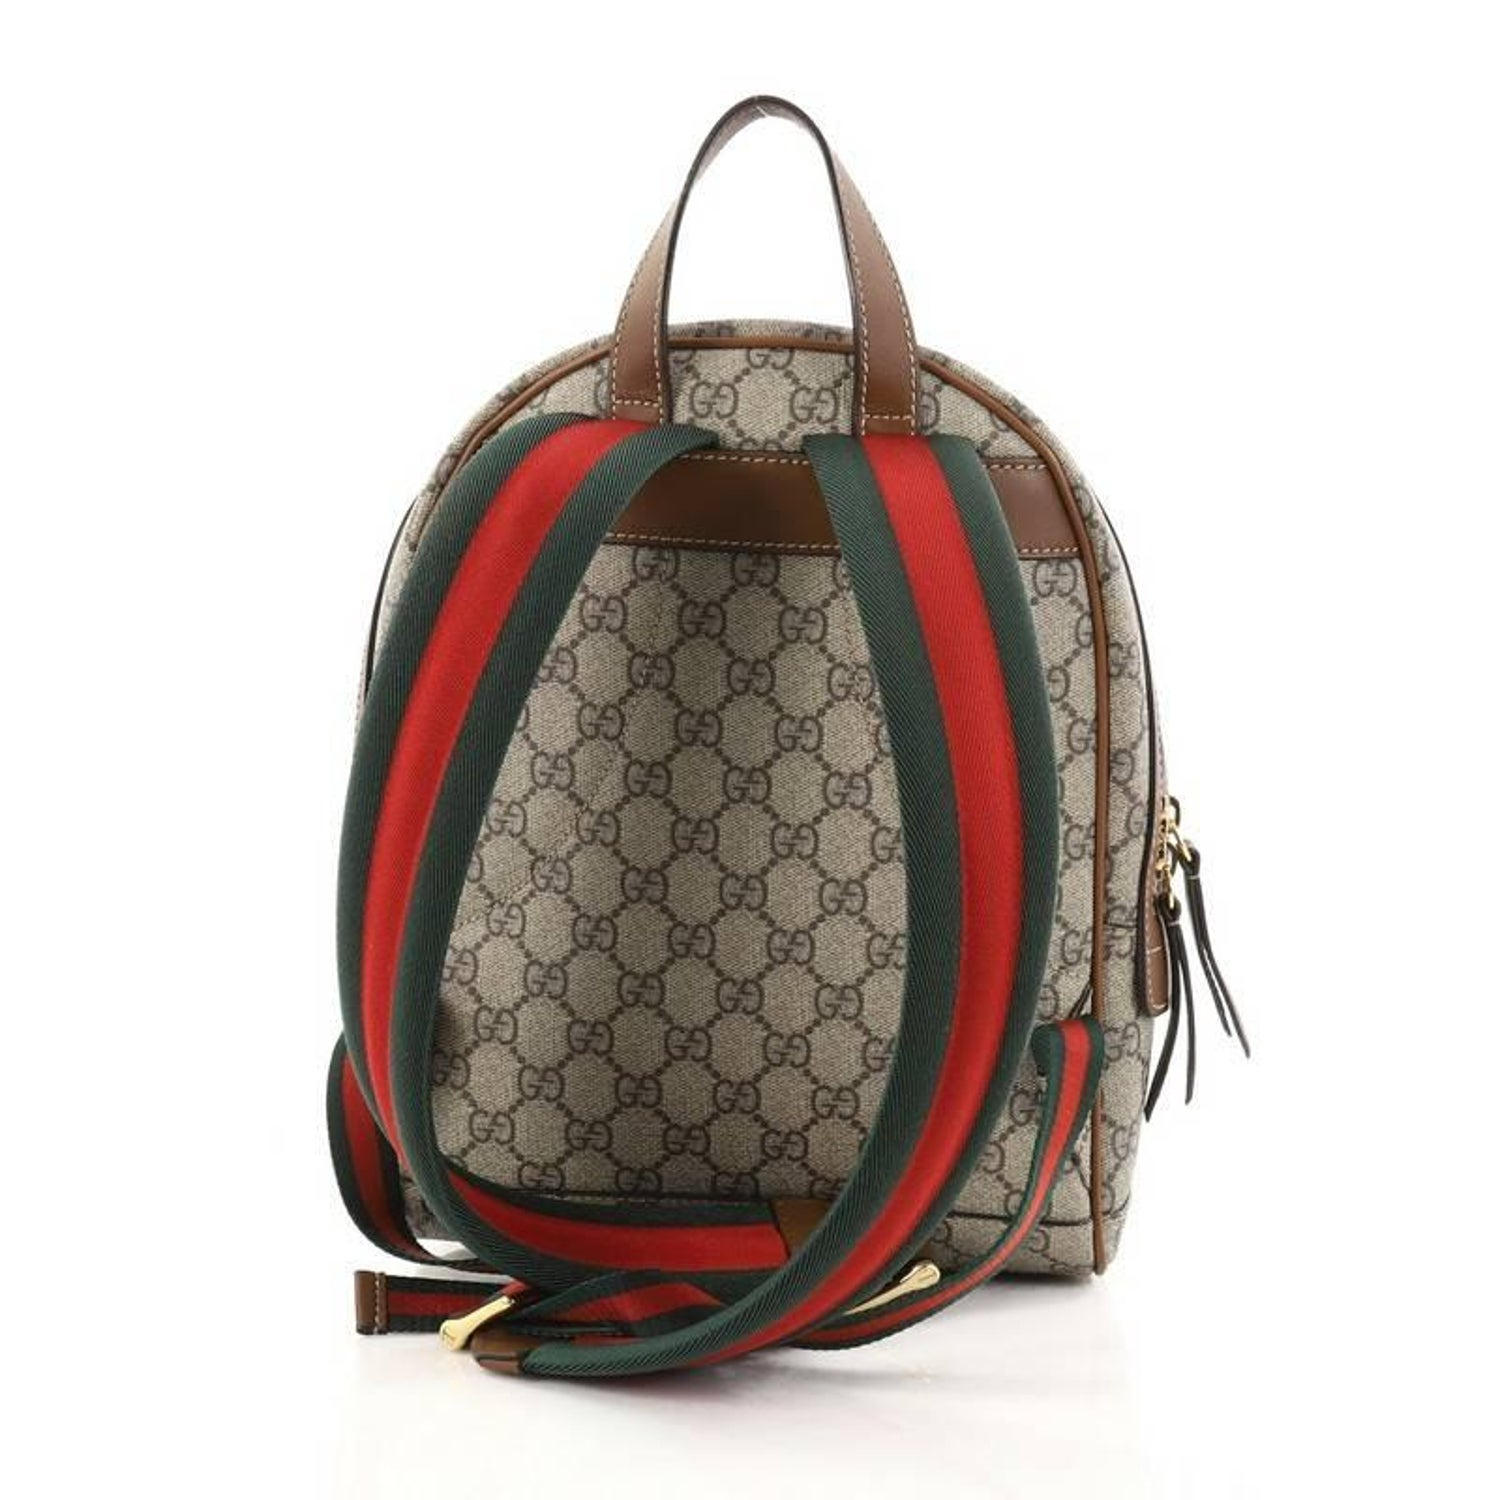 924360c6daf Gucci Zip Pocket Backpack Embroidered GG Coated Canvas Small at 1stdibs